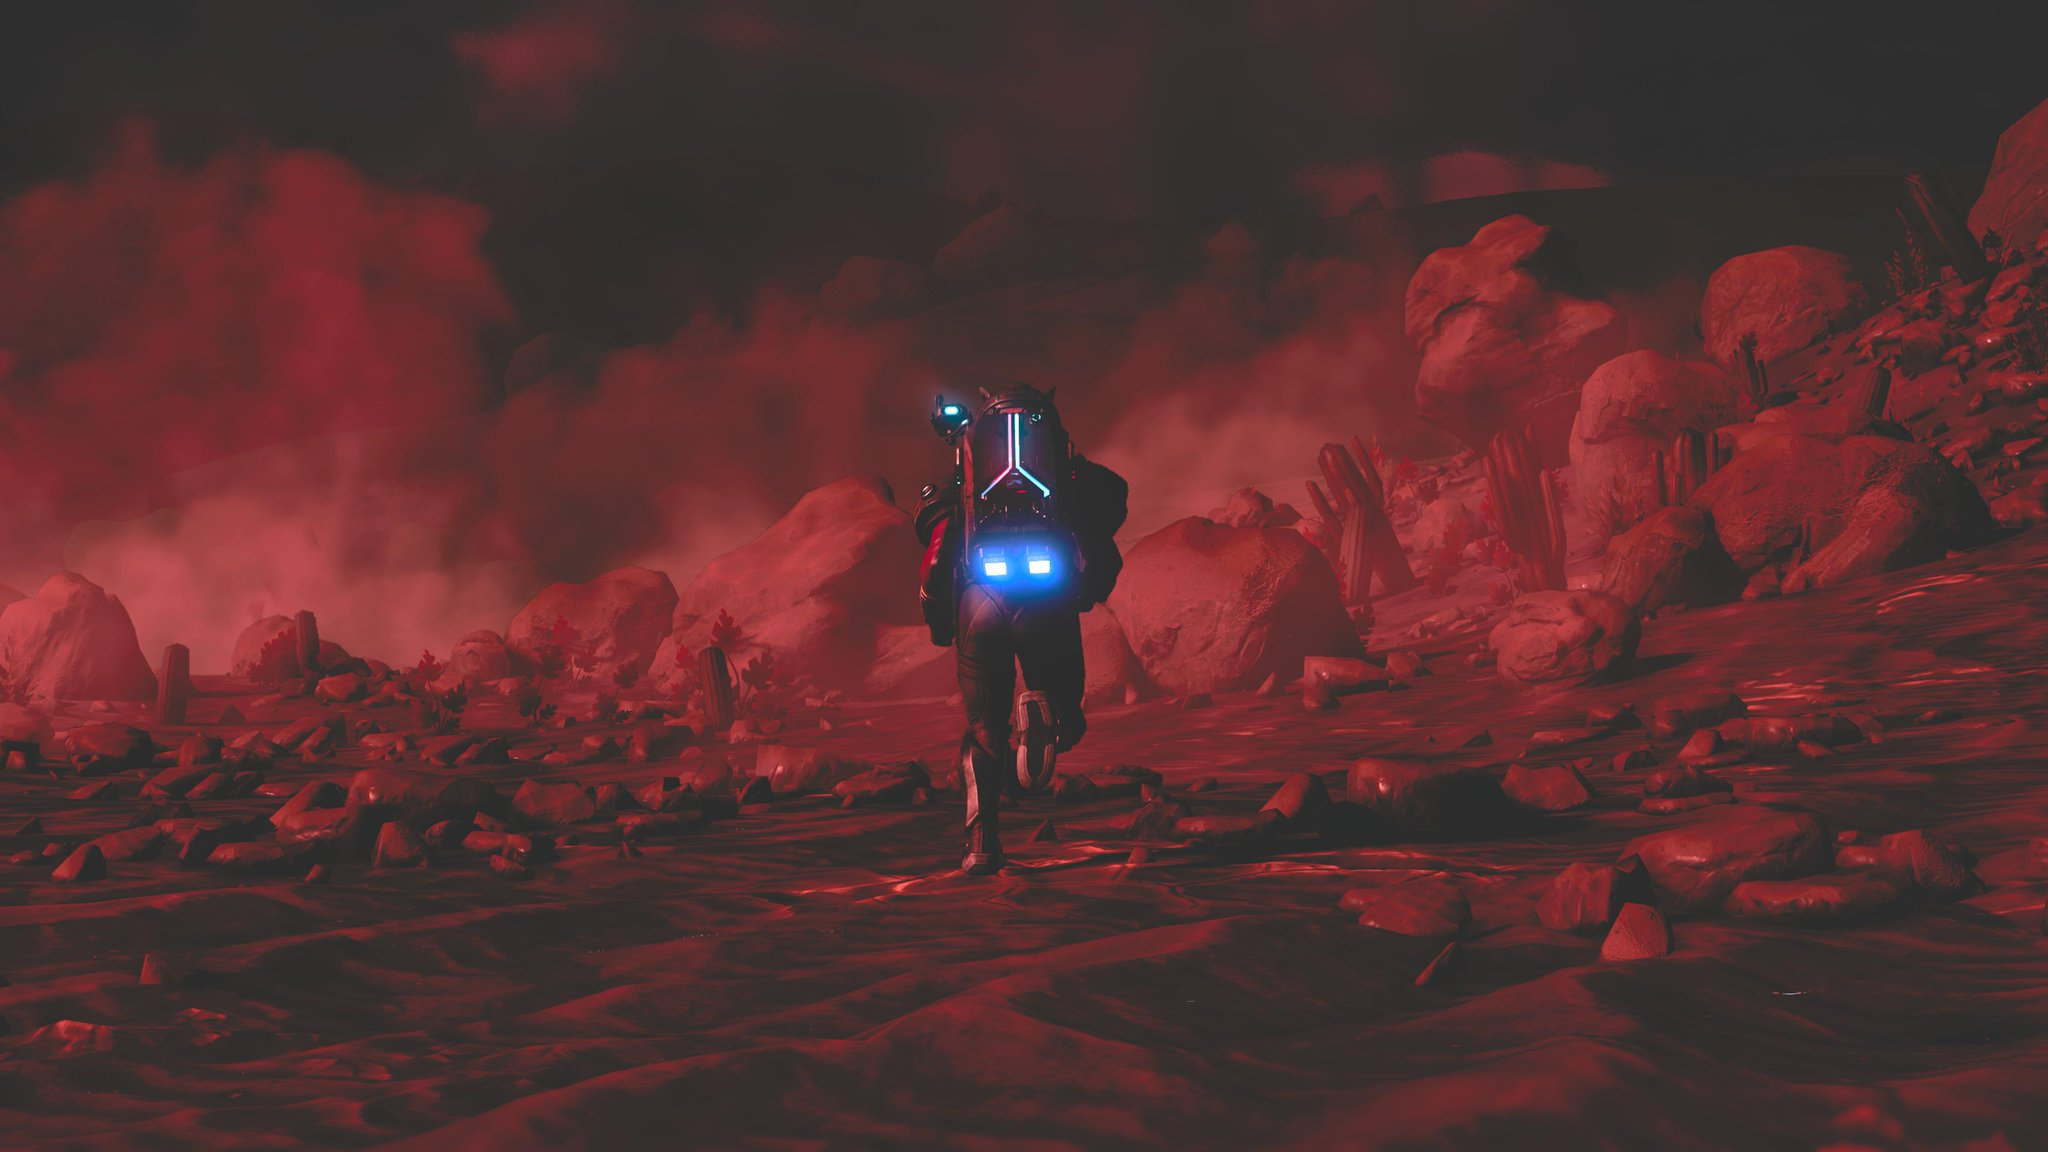 An astronaut runs through a storm covering a red planet, mist fills the air and the only light is from the glow of the astronauts backpack.